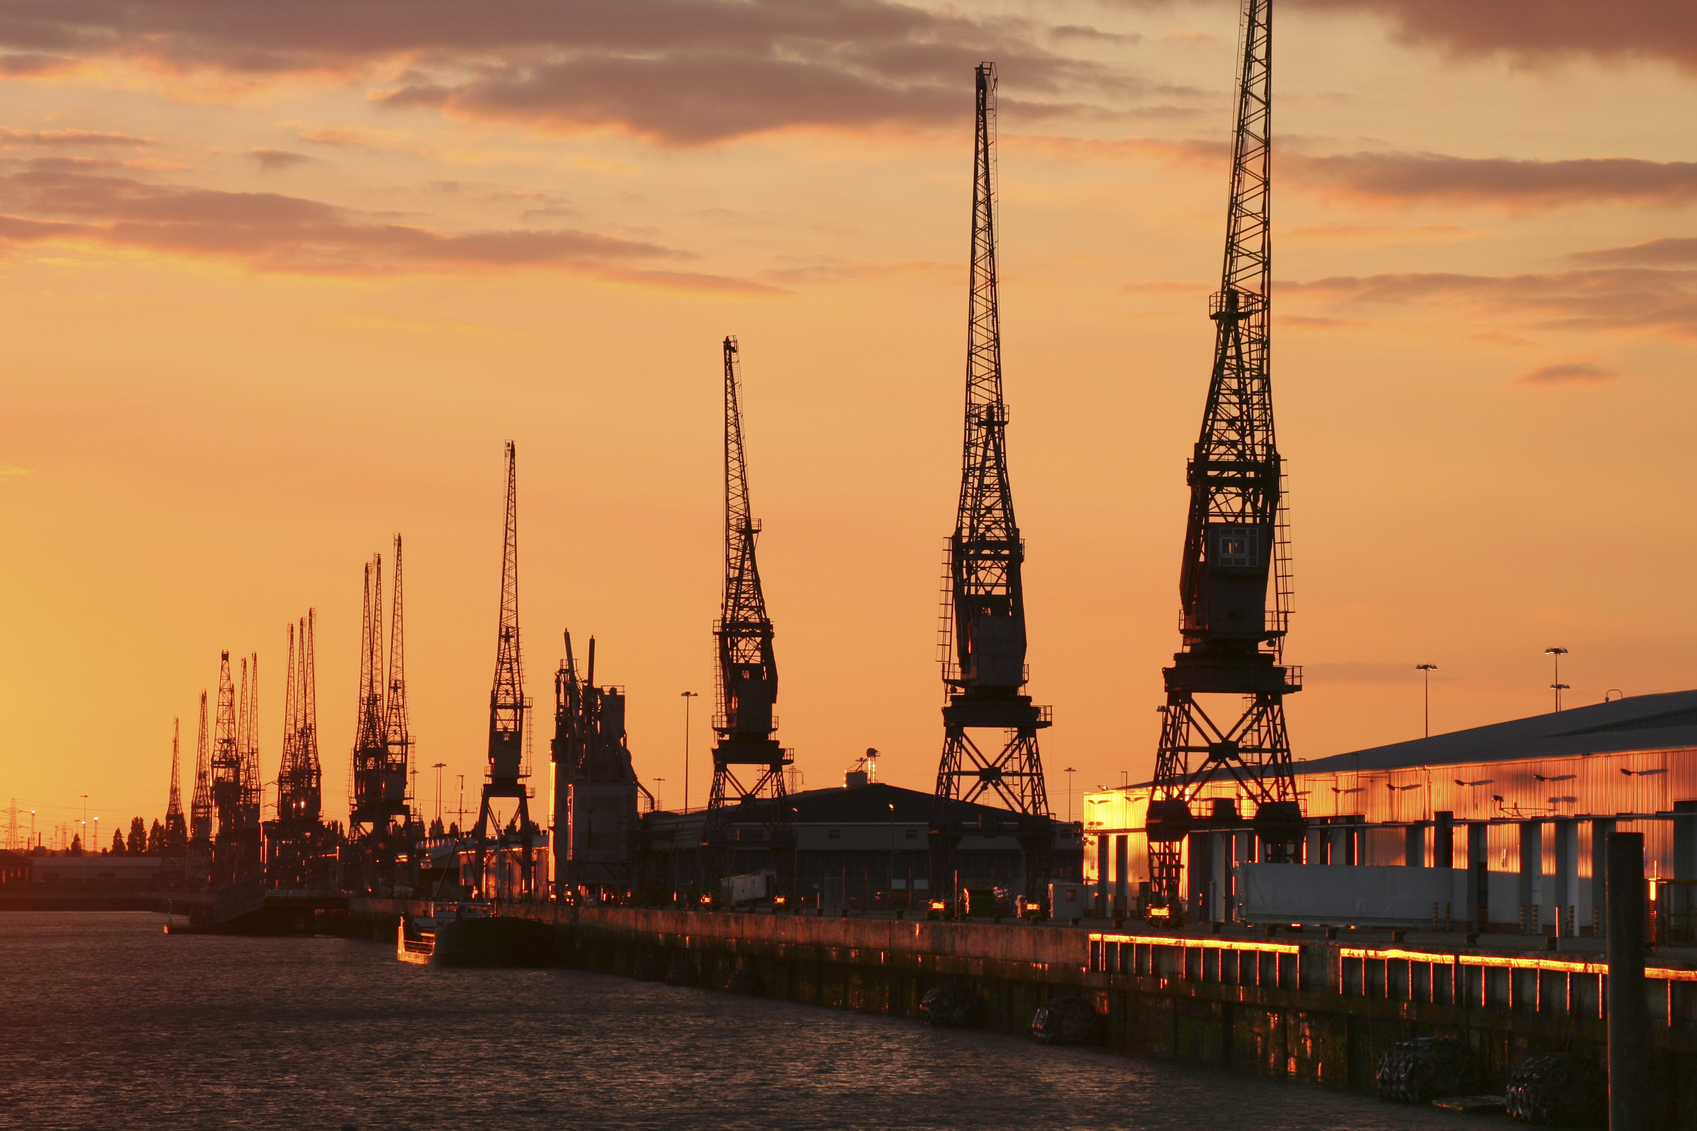 Southampton Docks at sunset